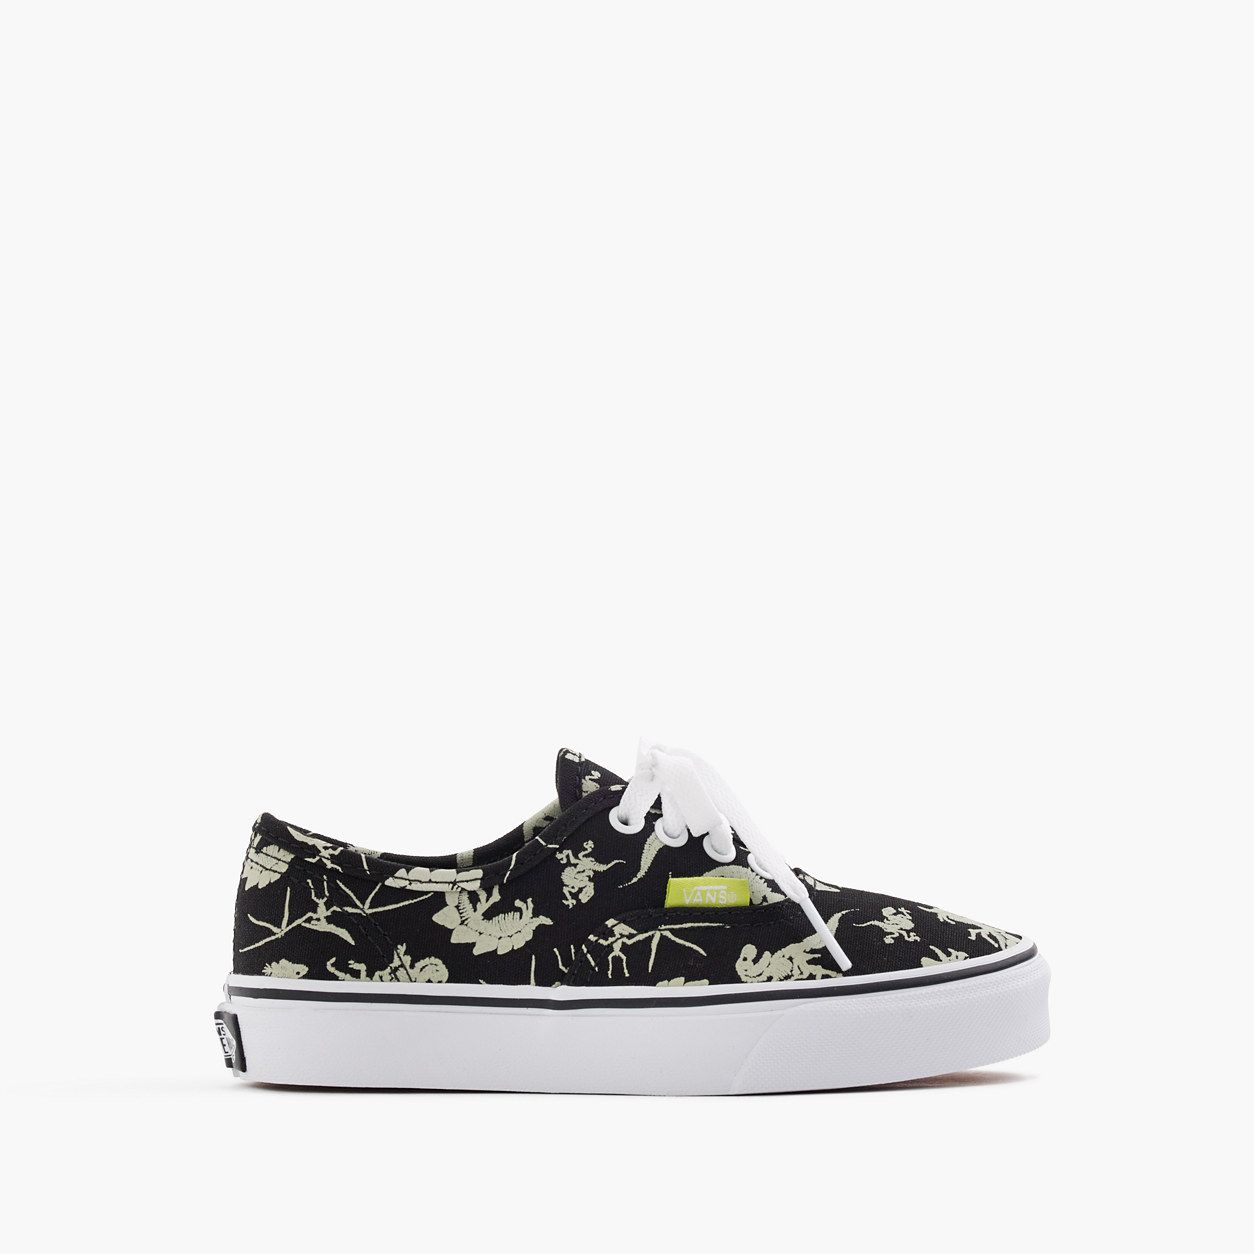 96c1d23637e crewcuts Boys Vans Authentic Glow-In-The-Dark Dinosaurs Sneakers (Size 12  Kid)